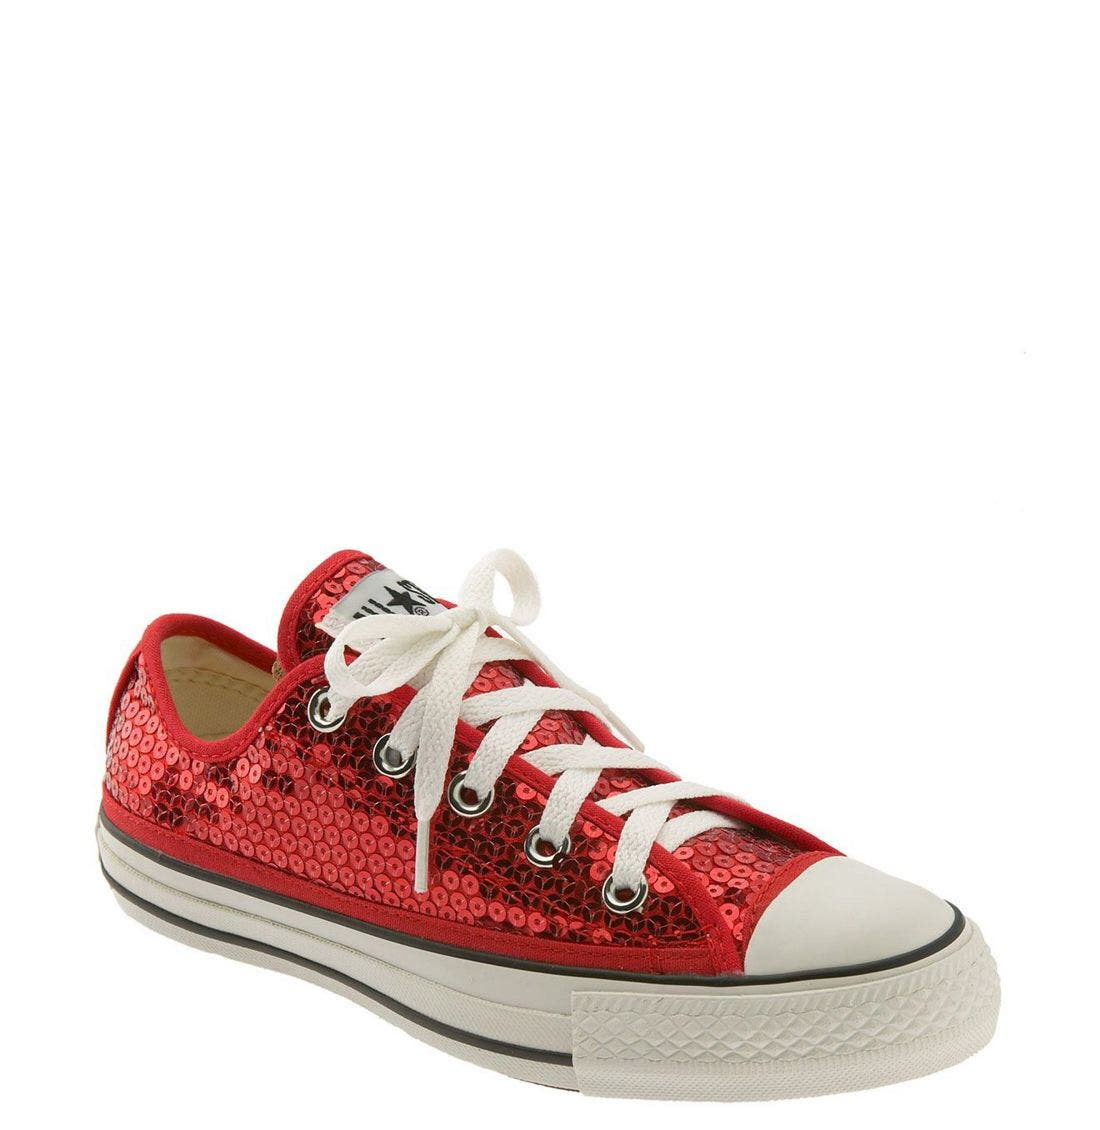 Main Image - Converse Chuck Taylor® Sequined Sneaker (Women)